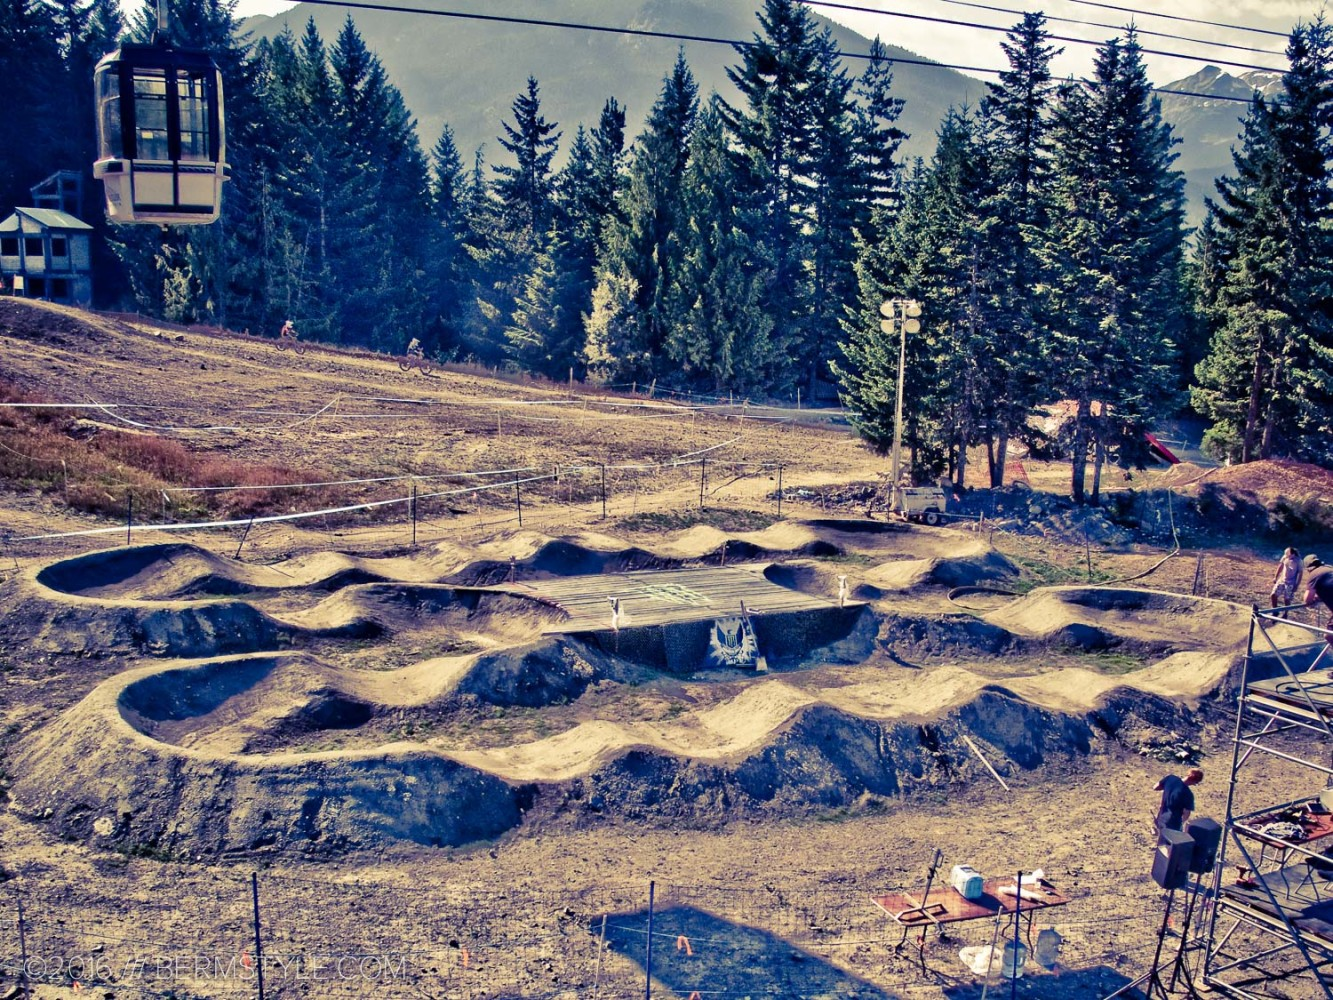 The competition track at Whistler, constructed for Crankworx 2010.